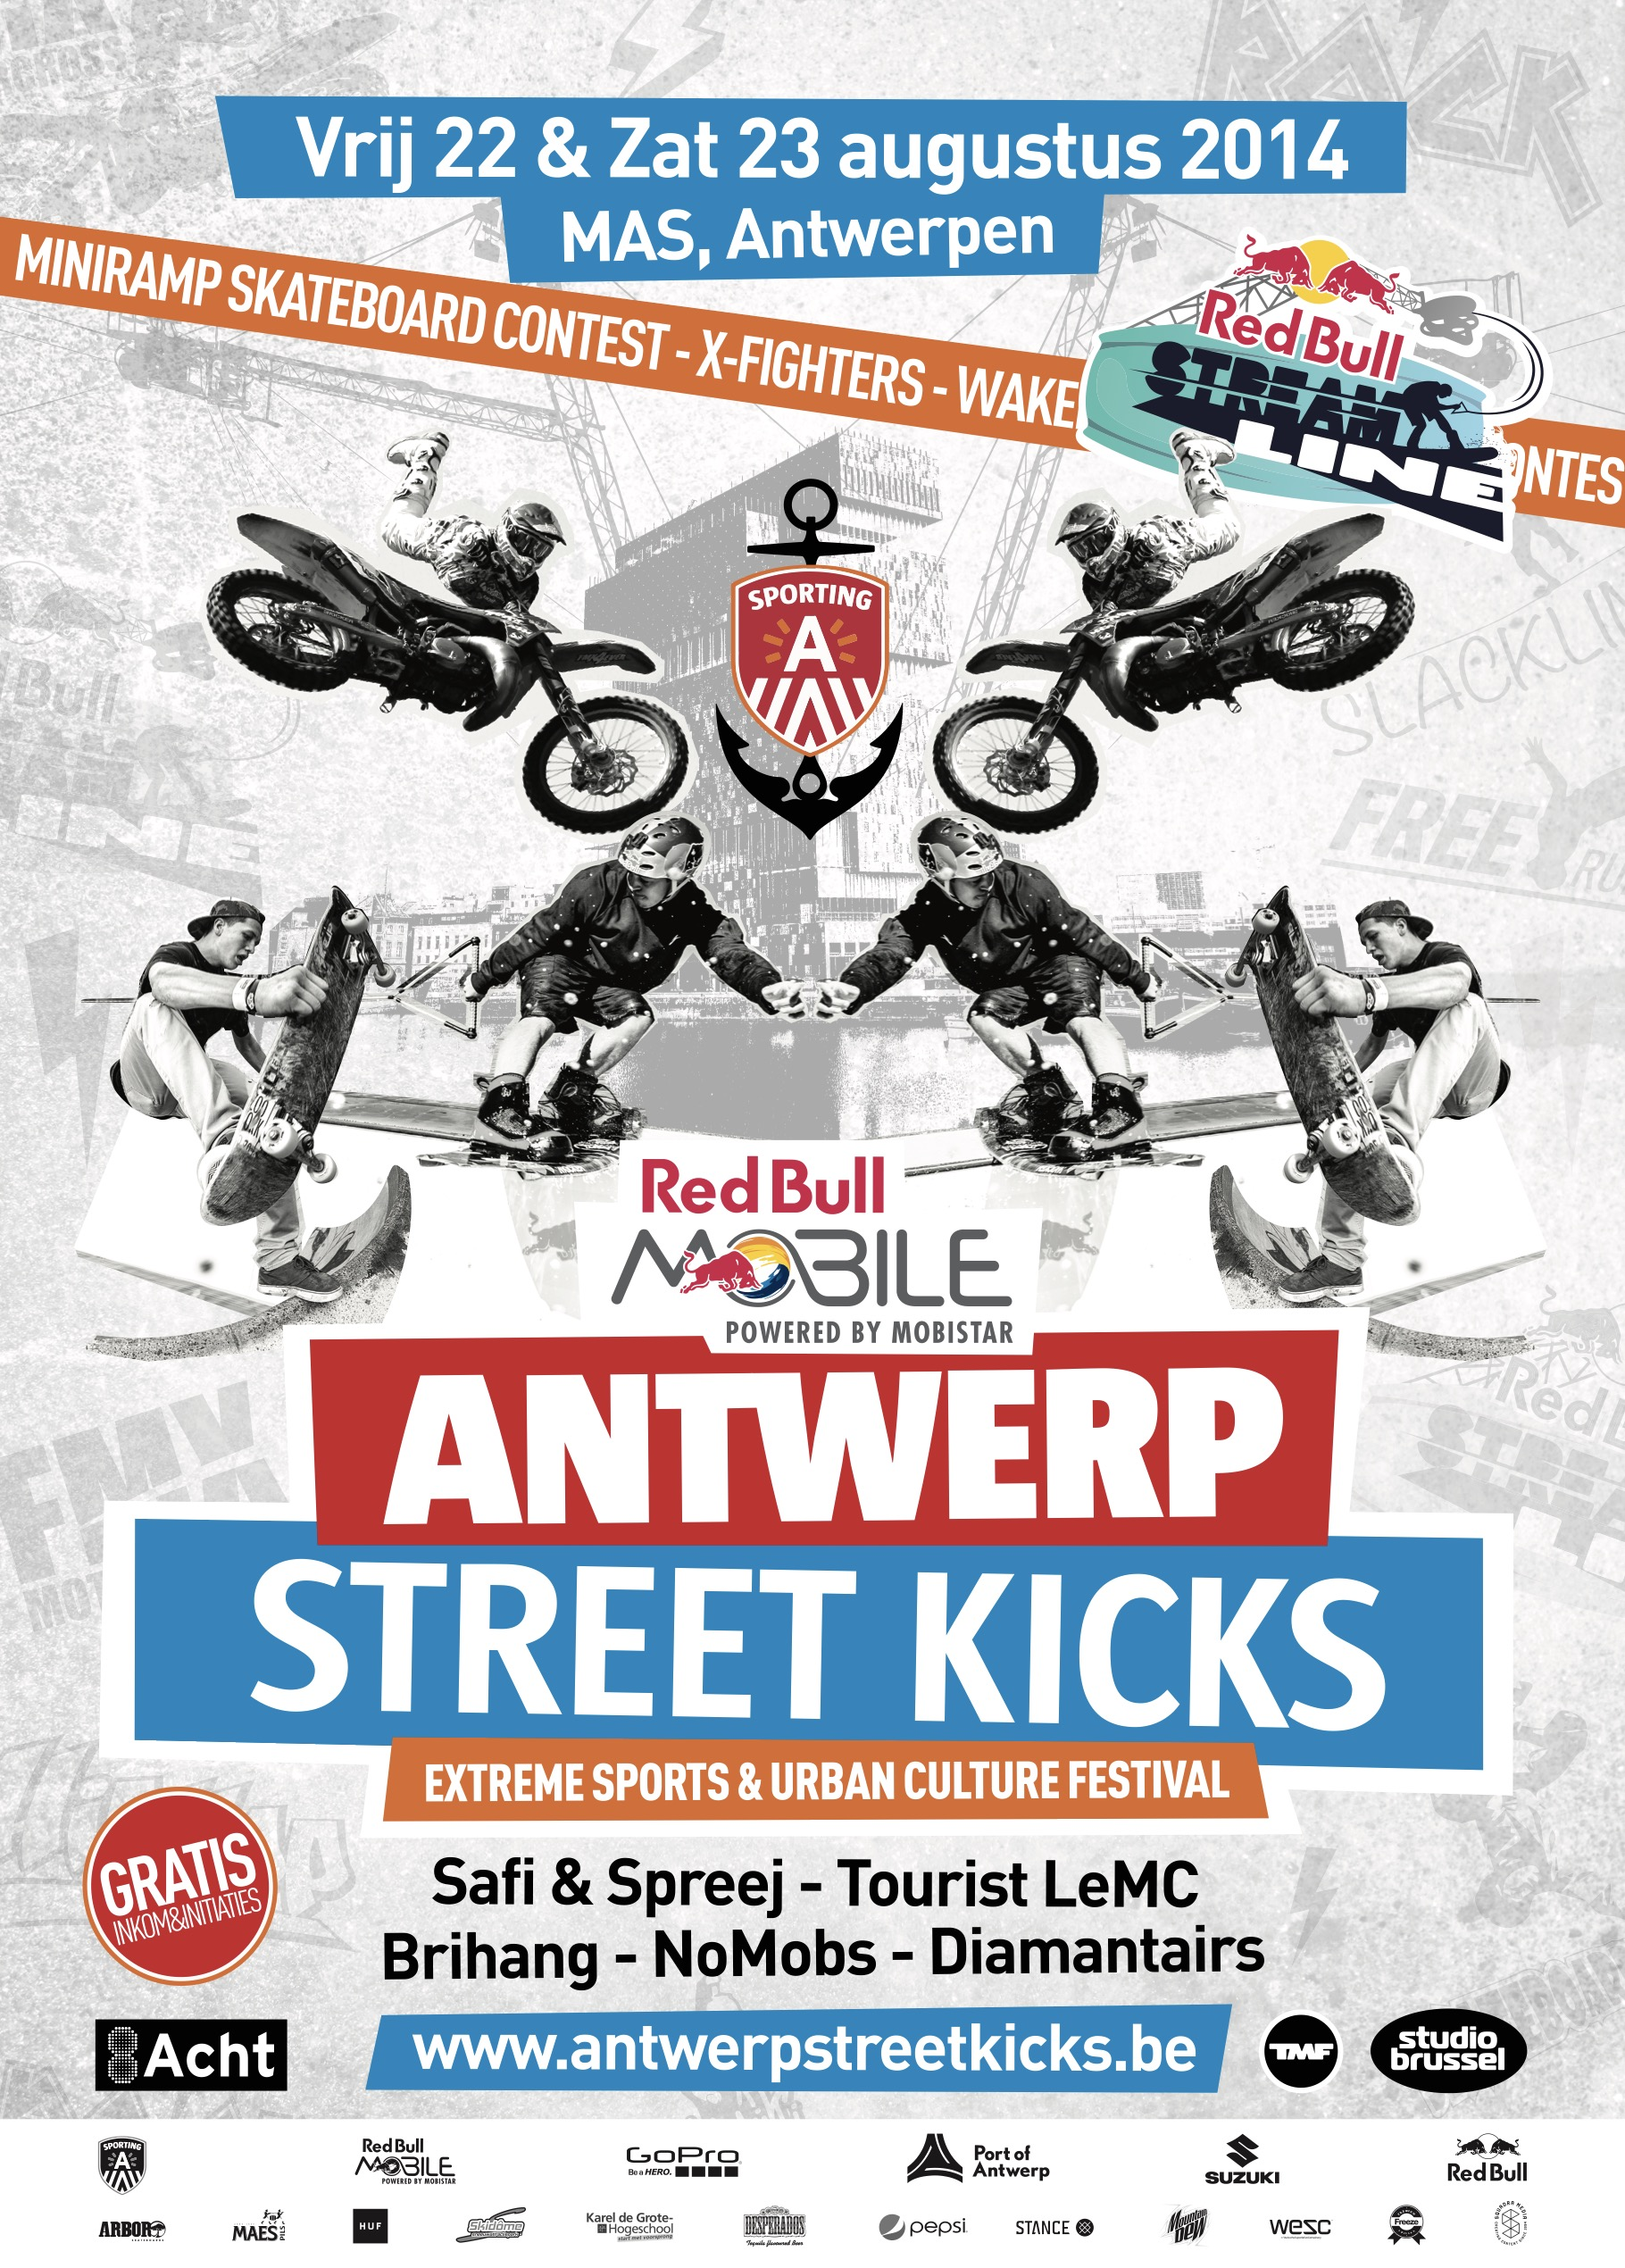 Antwerp Street Kicks